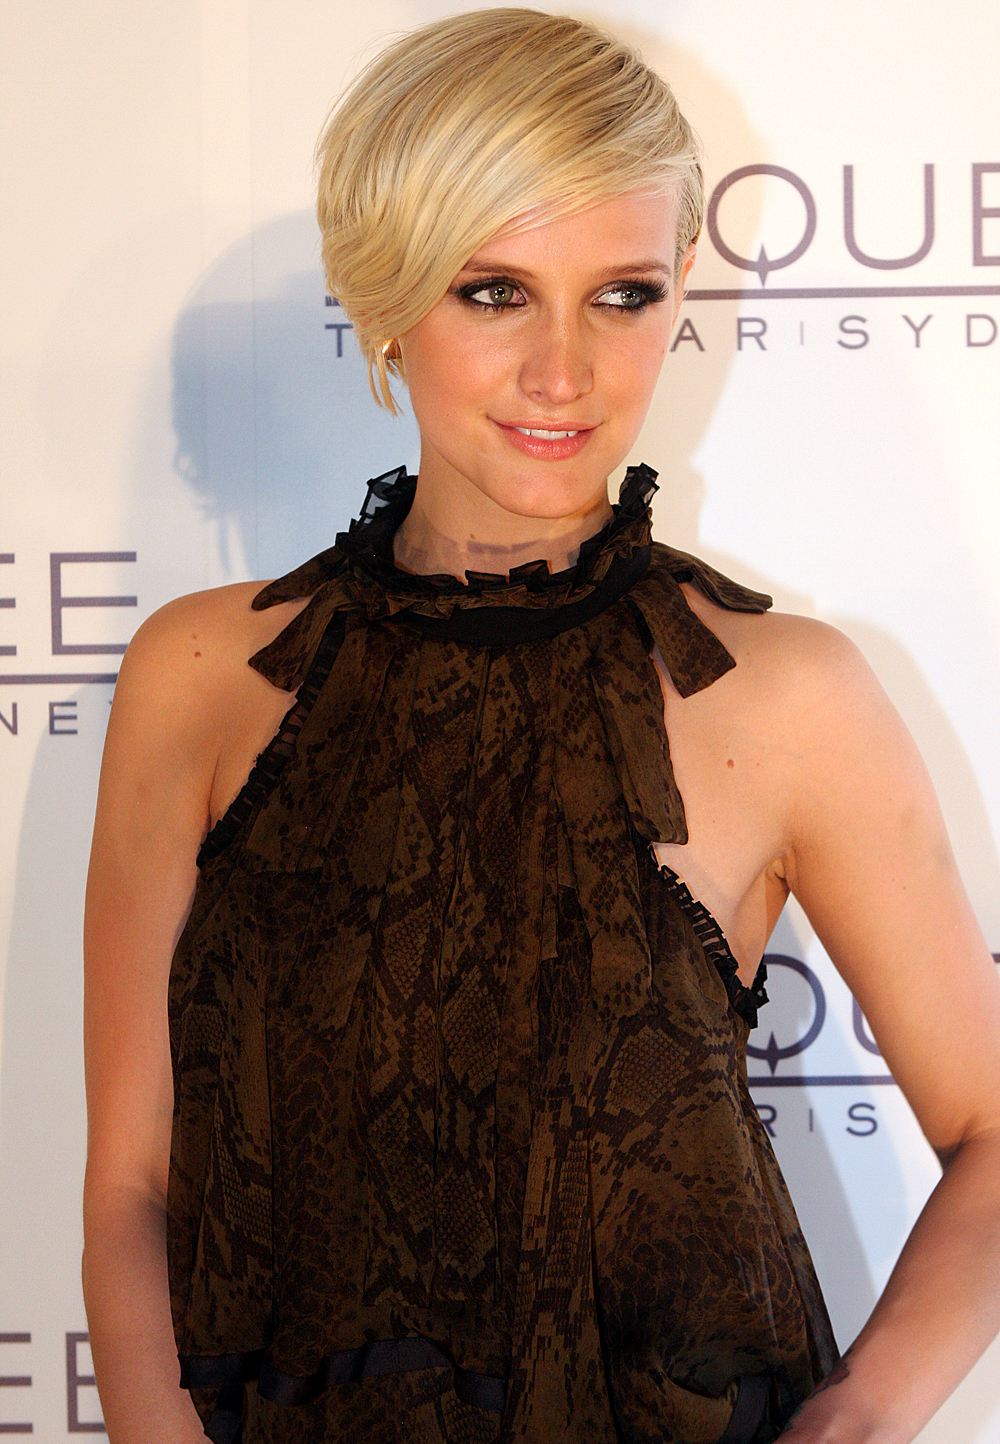 Ashlee Simpson Biography